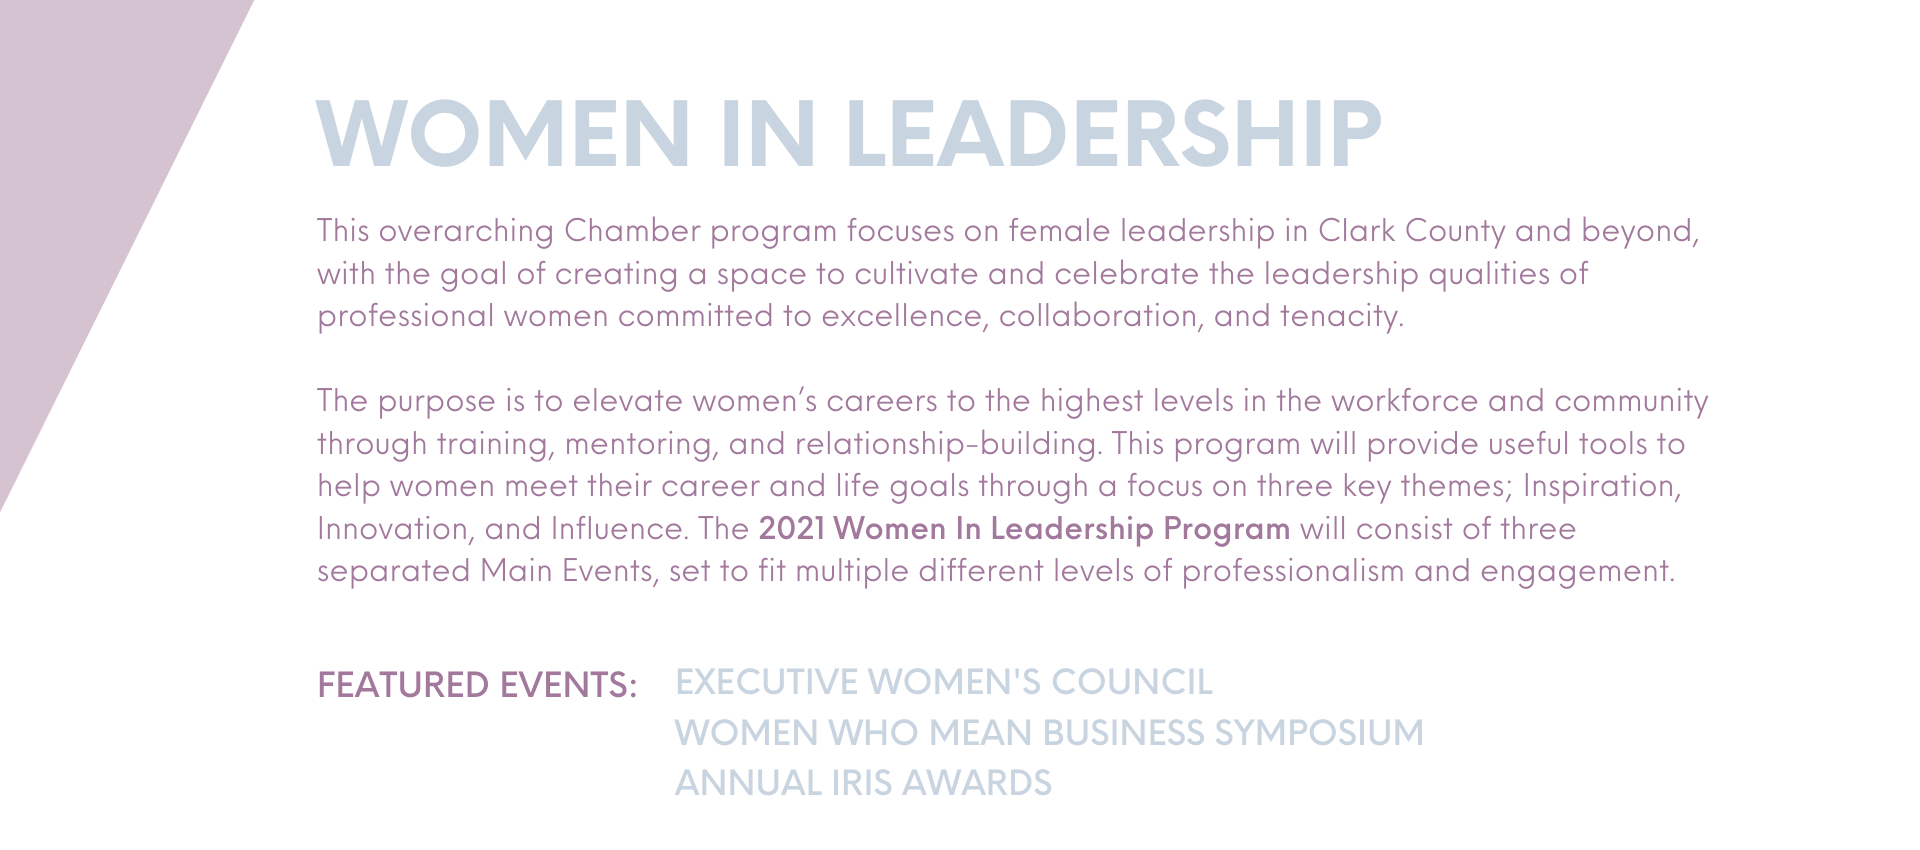 This overarching Chamber program focuses on female leadership in Clark County and beyond, with the goal of creating a space to cultivate and celebrate the leadership qualities of professional women committed to excellence, collaboration, and tenacity.  executive women's council women who mean business symposium annual iris awards The purpose is to elevate women's careers to the highest levels in the workforce and community through training, mentoring, and relationship-building. This program will provide useful tools to help women meet their career and life goals through a focus on three key themes; Inspiration, Innovation, and Influence. The 2021 Women In Leadership Program will consist of three separated Main Events, set to fit multiple different levels of professionalism and engagement.